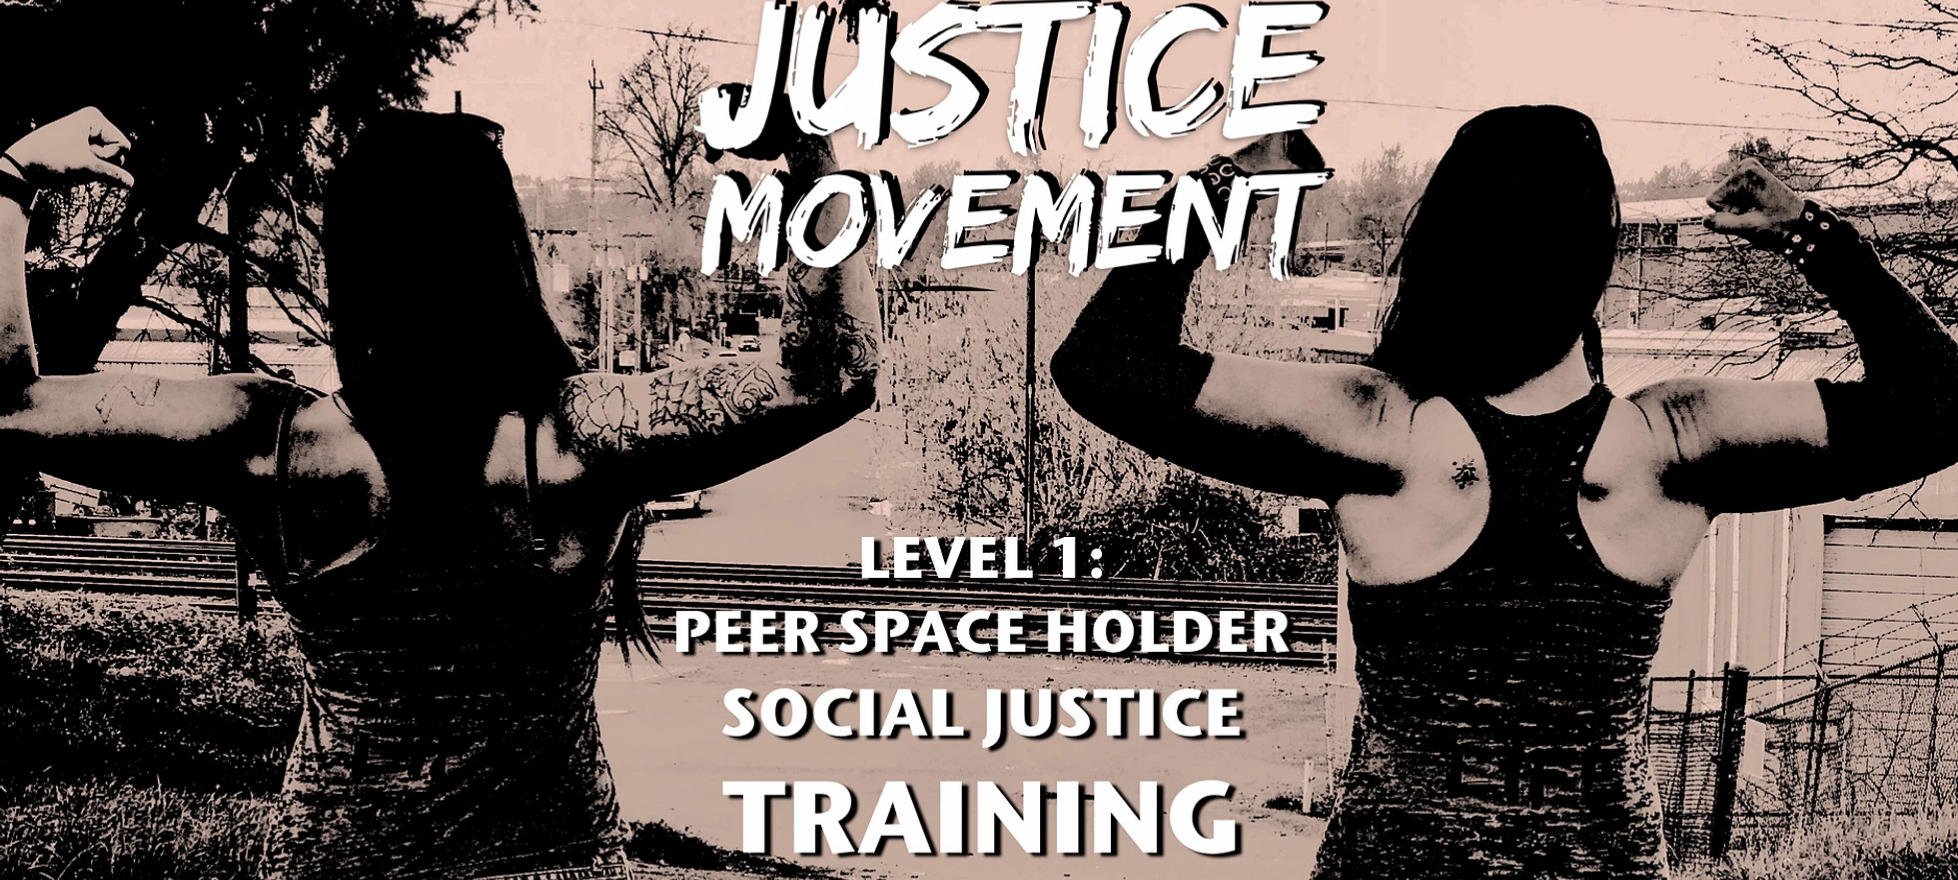 Peer Space Holder by Justice Movement